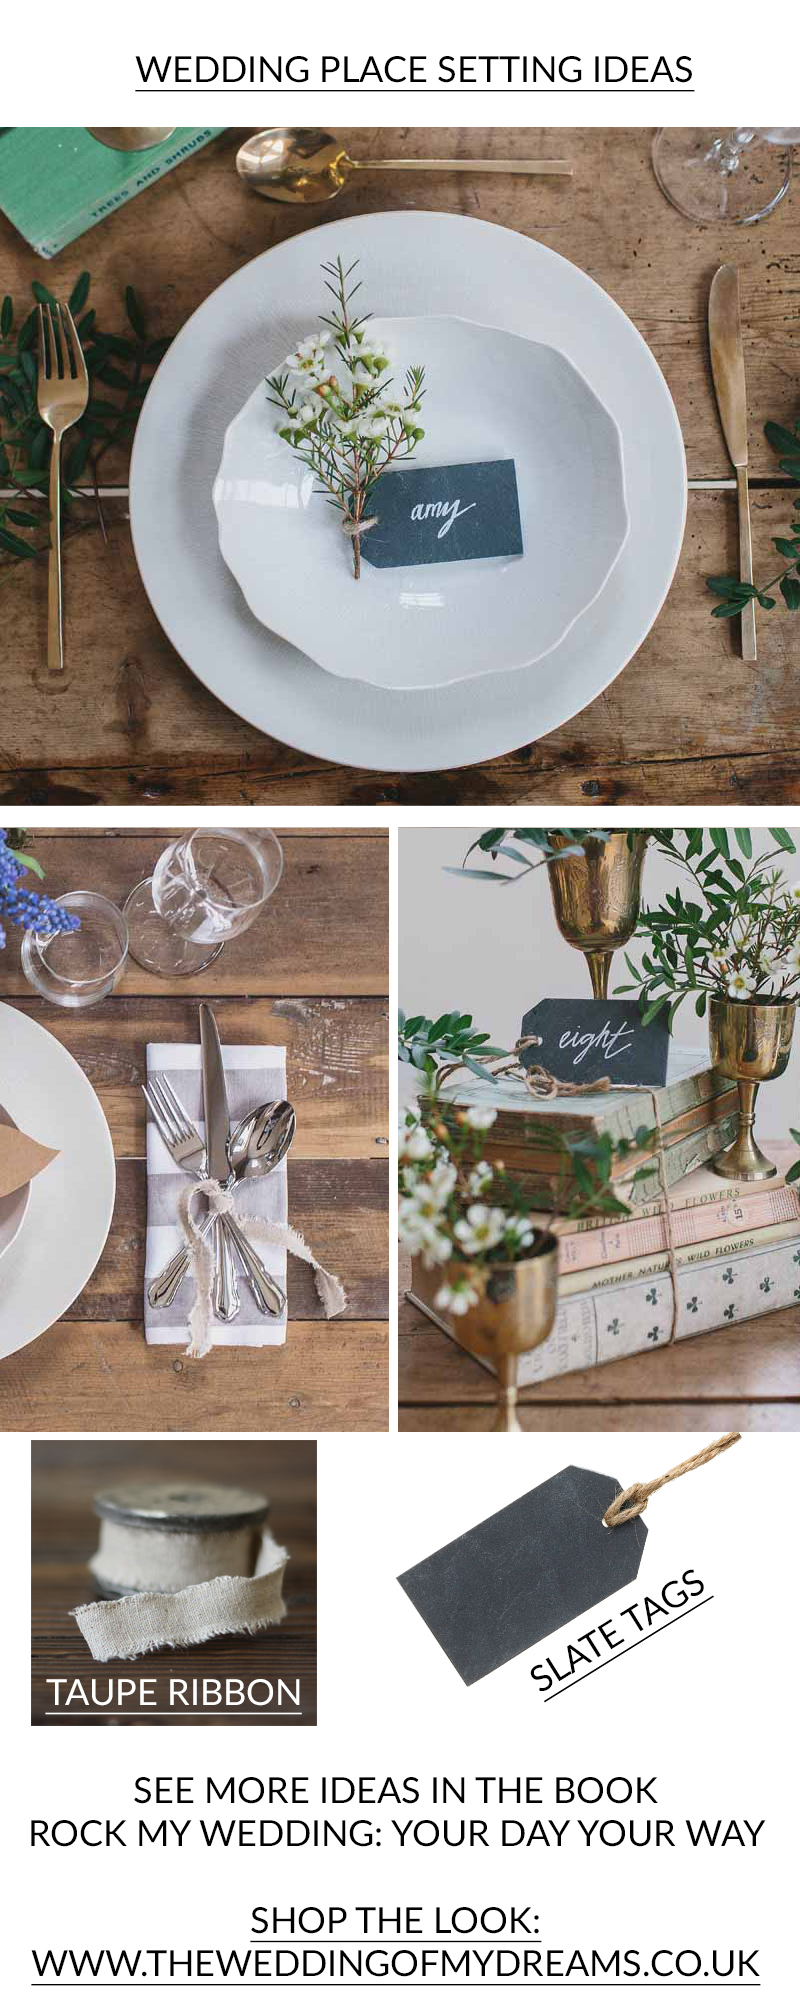 WEDDING PLACE SETTING IDEAS from Rock My Wedding Book